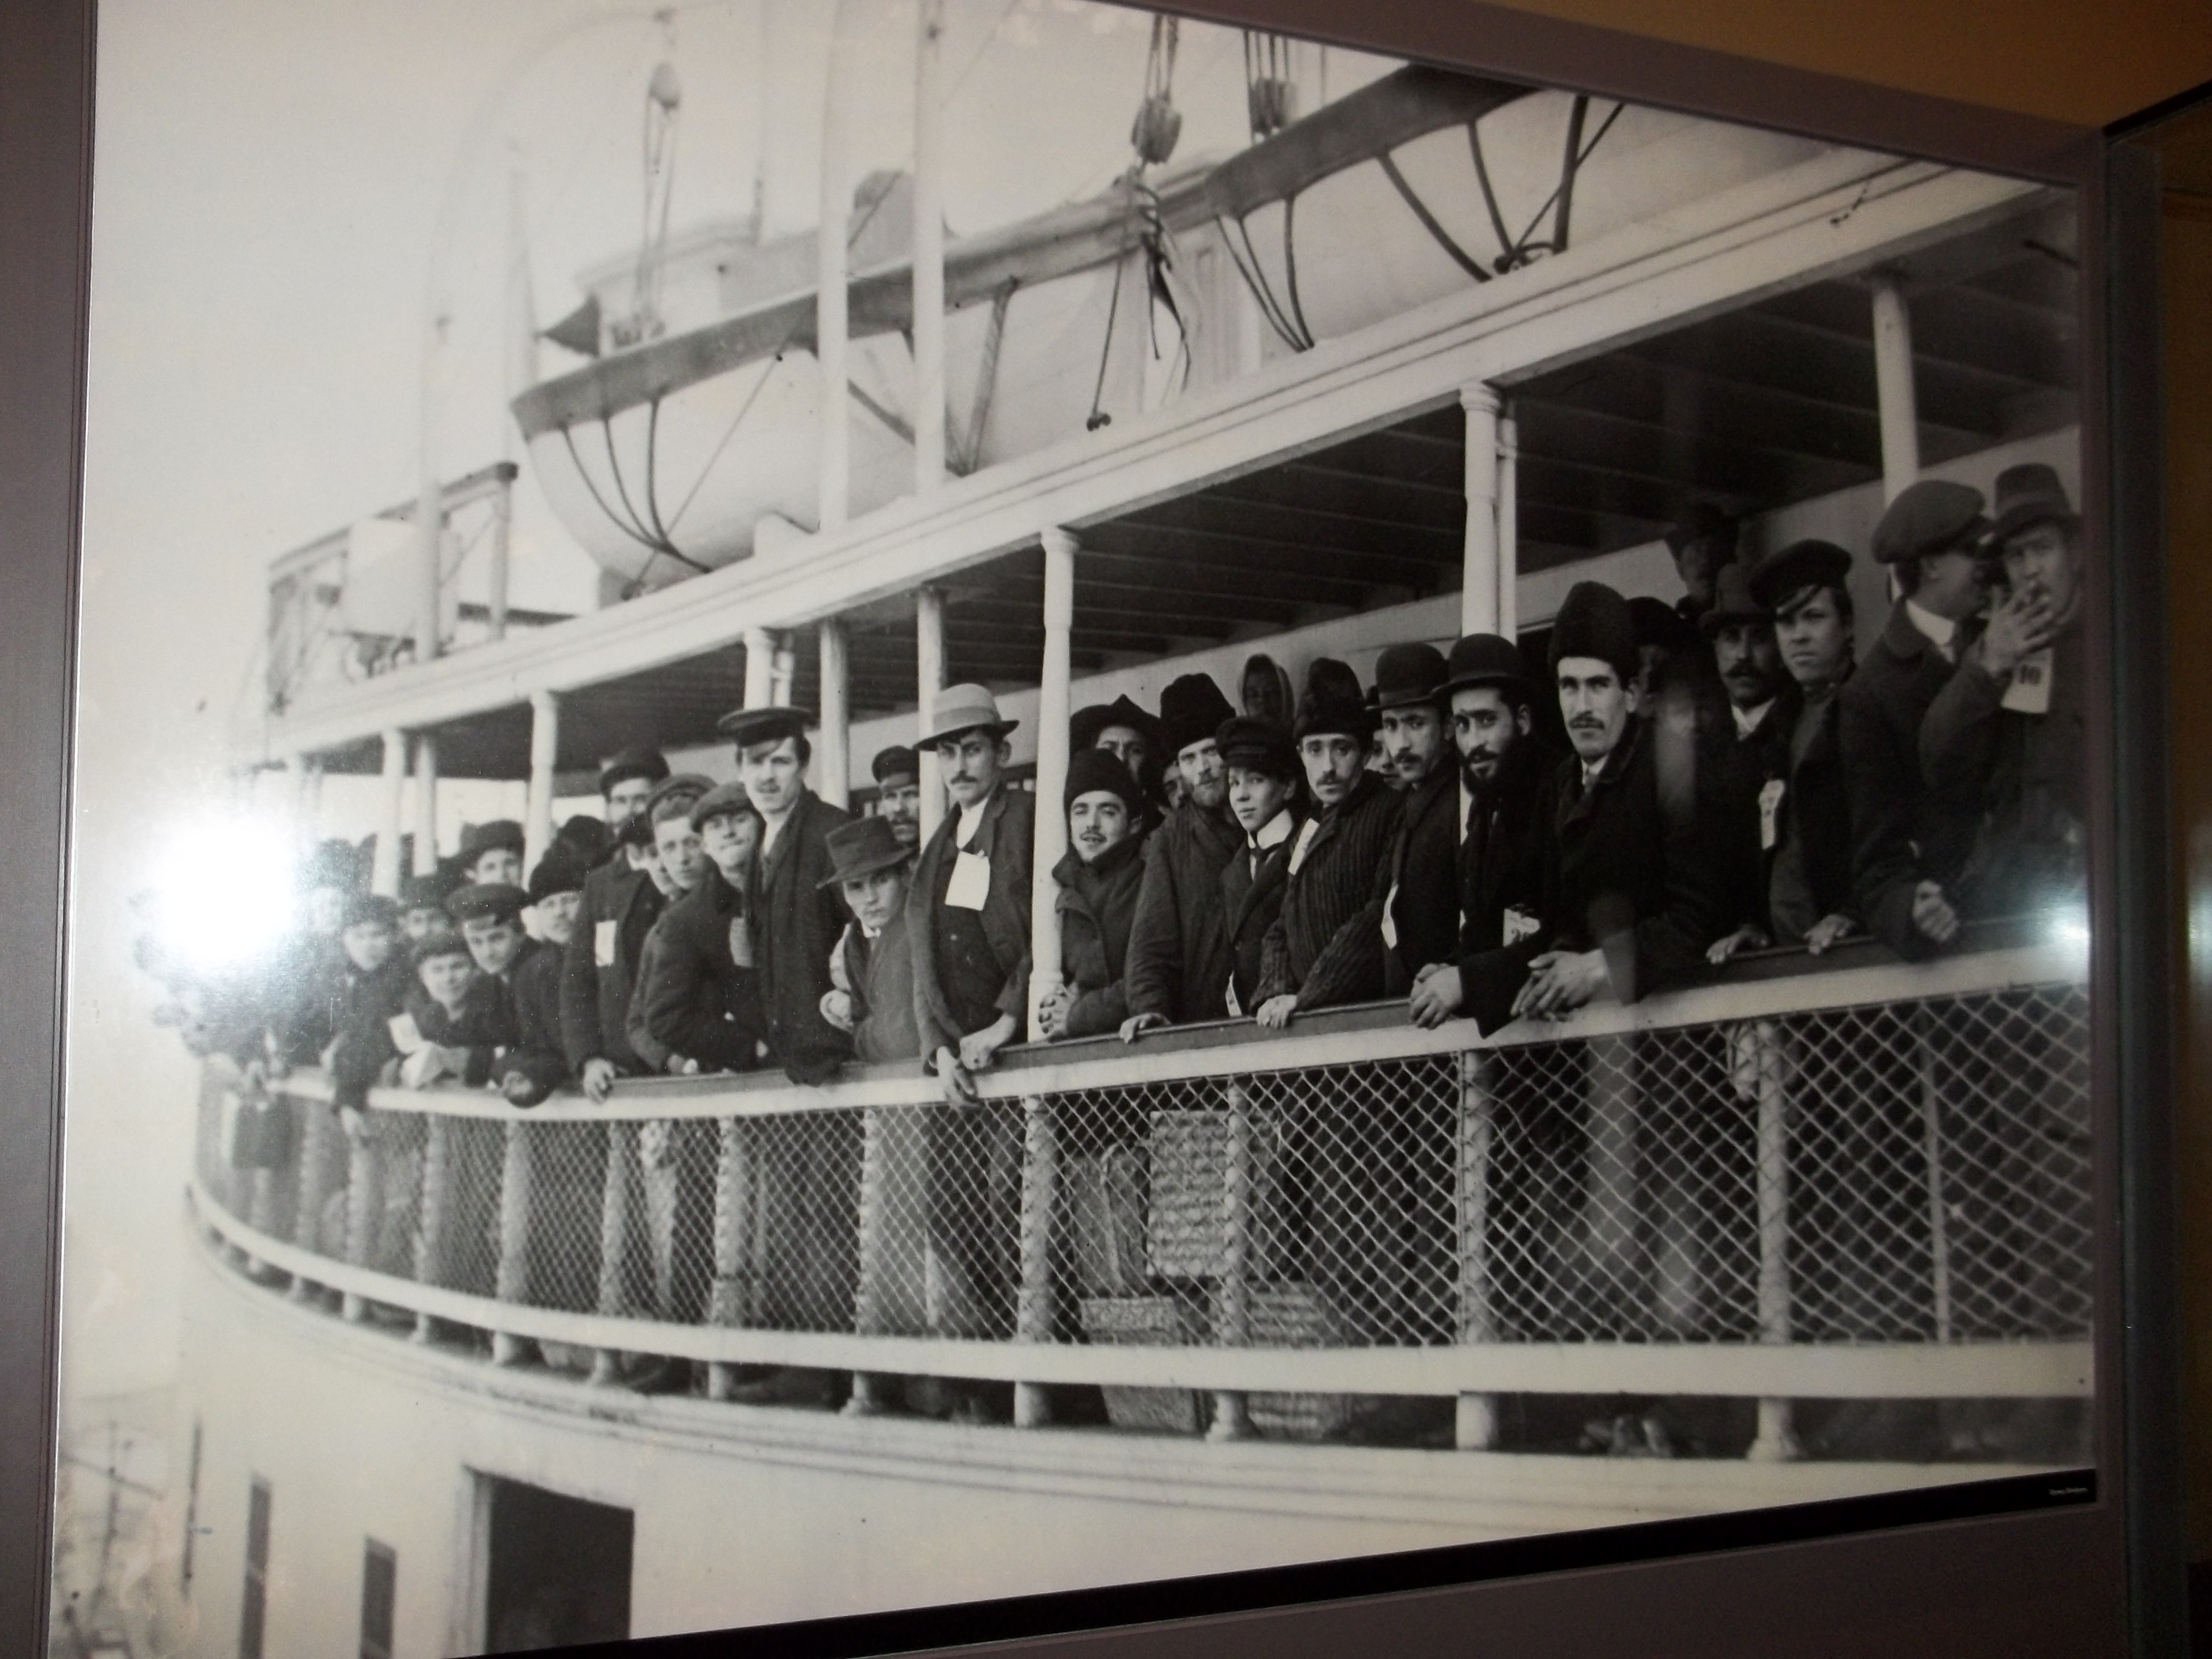 How Long Did Immigrants Stay At Ellis Island